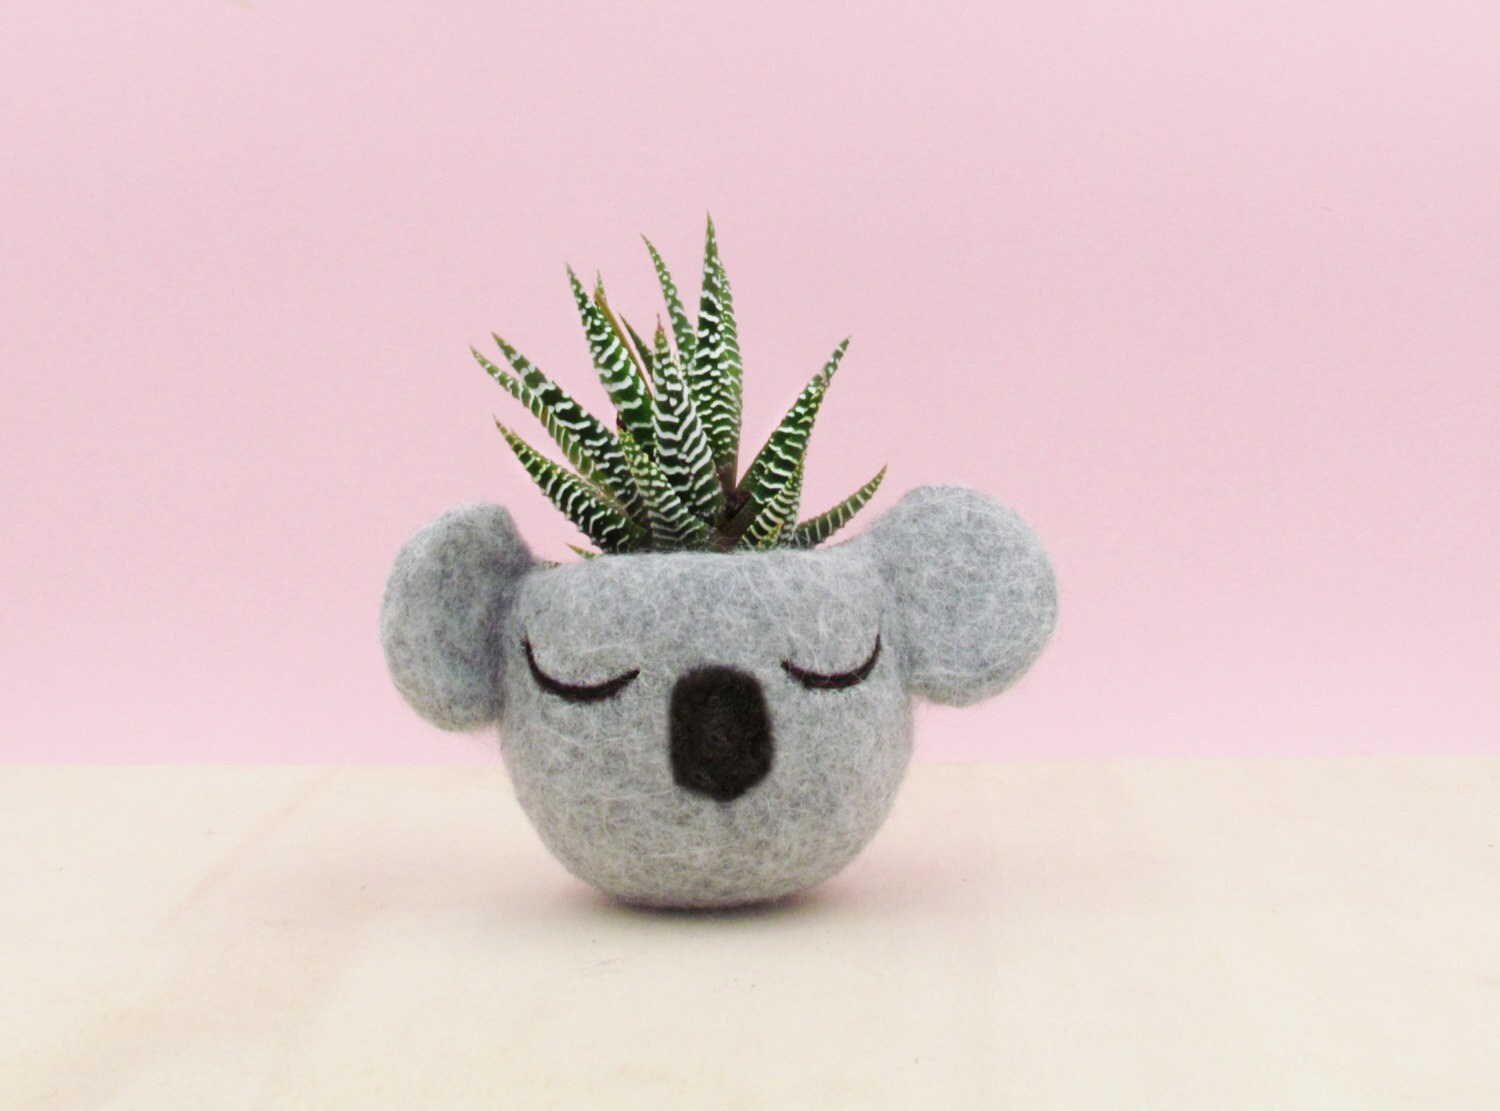 Cubicle Wall Planter Koala Bear Succulent Planter Cubicle Decor Teacher Gifts Plant Pot Cute Planters Pots Fall Decor Desk Decor Personalized Gift